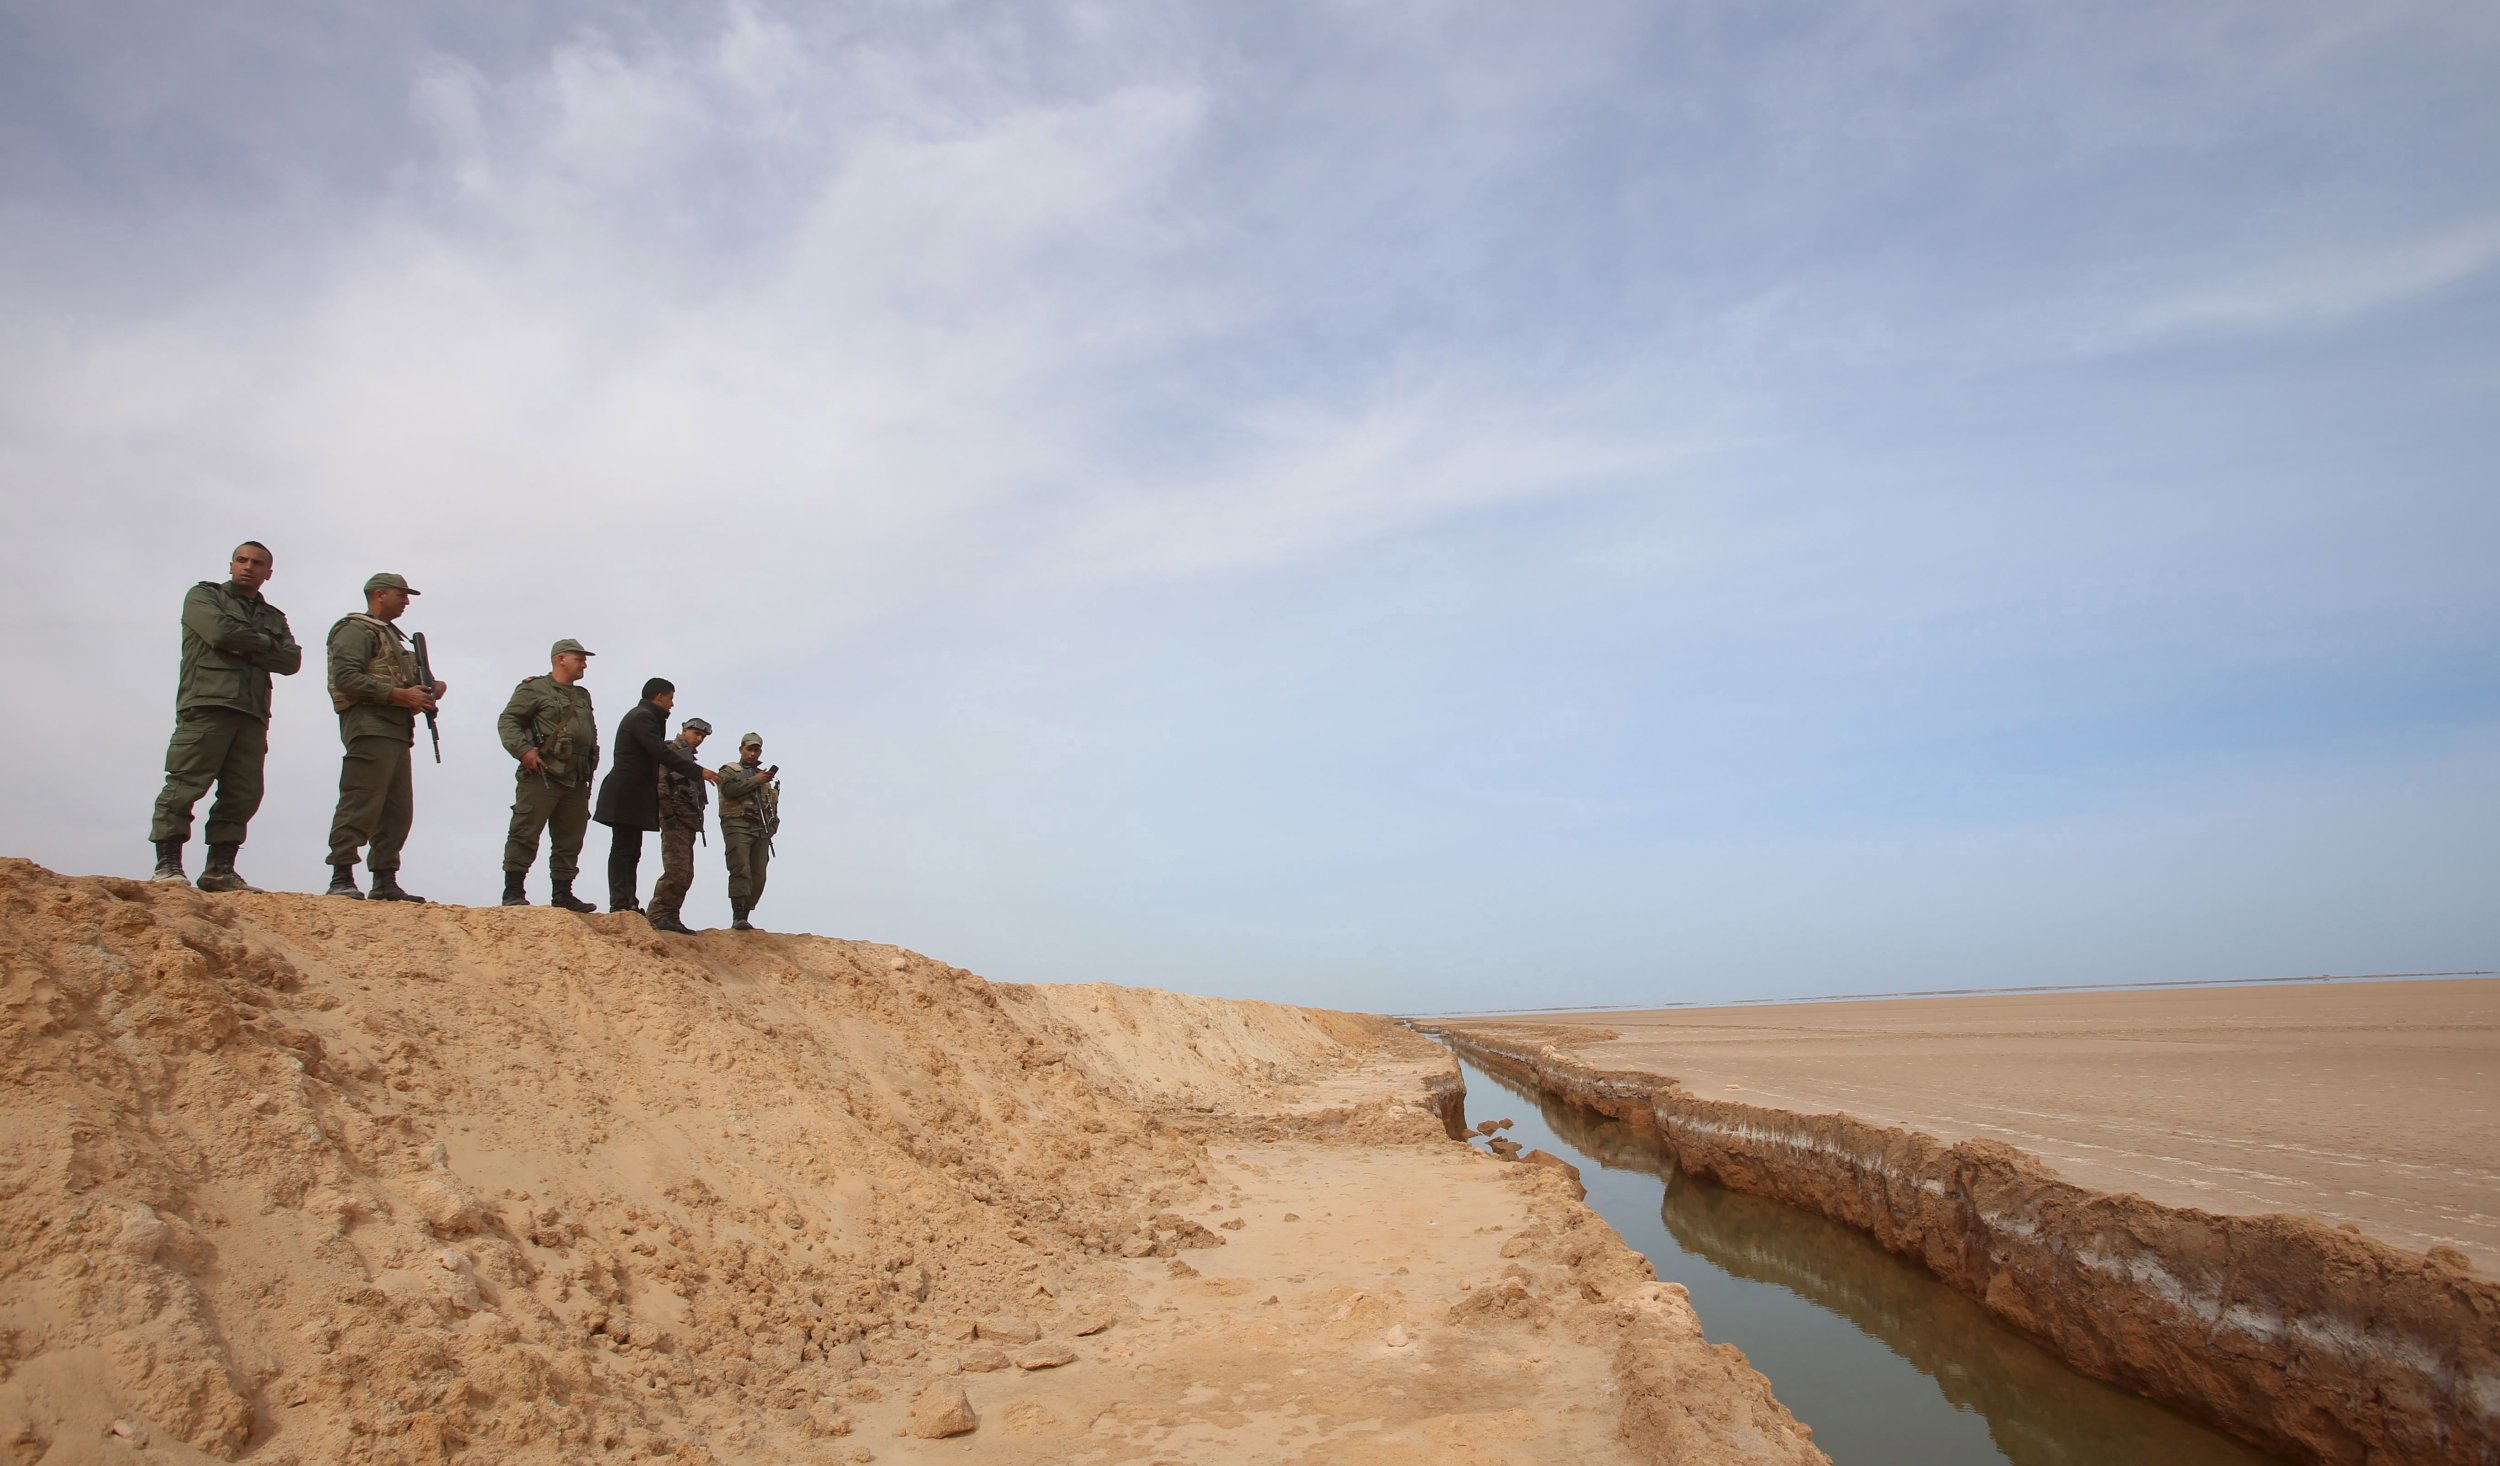 Tunisian soldiers look at the border barrier with Libya.